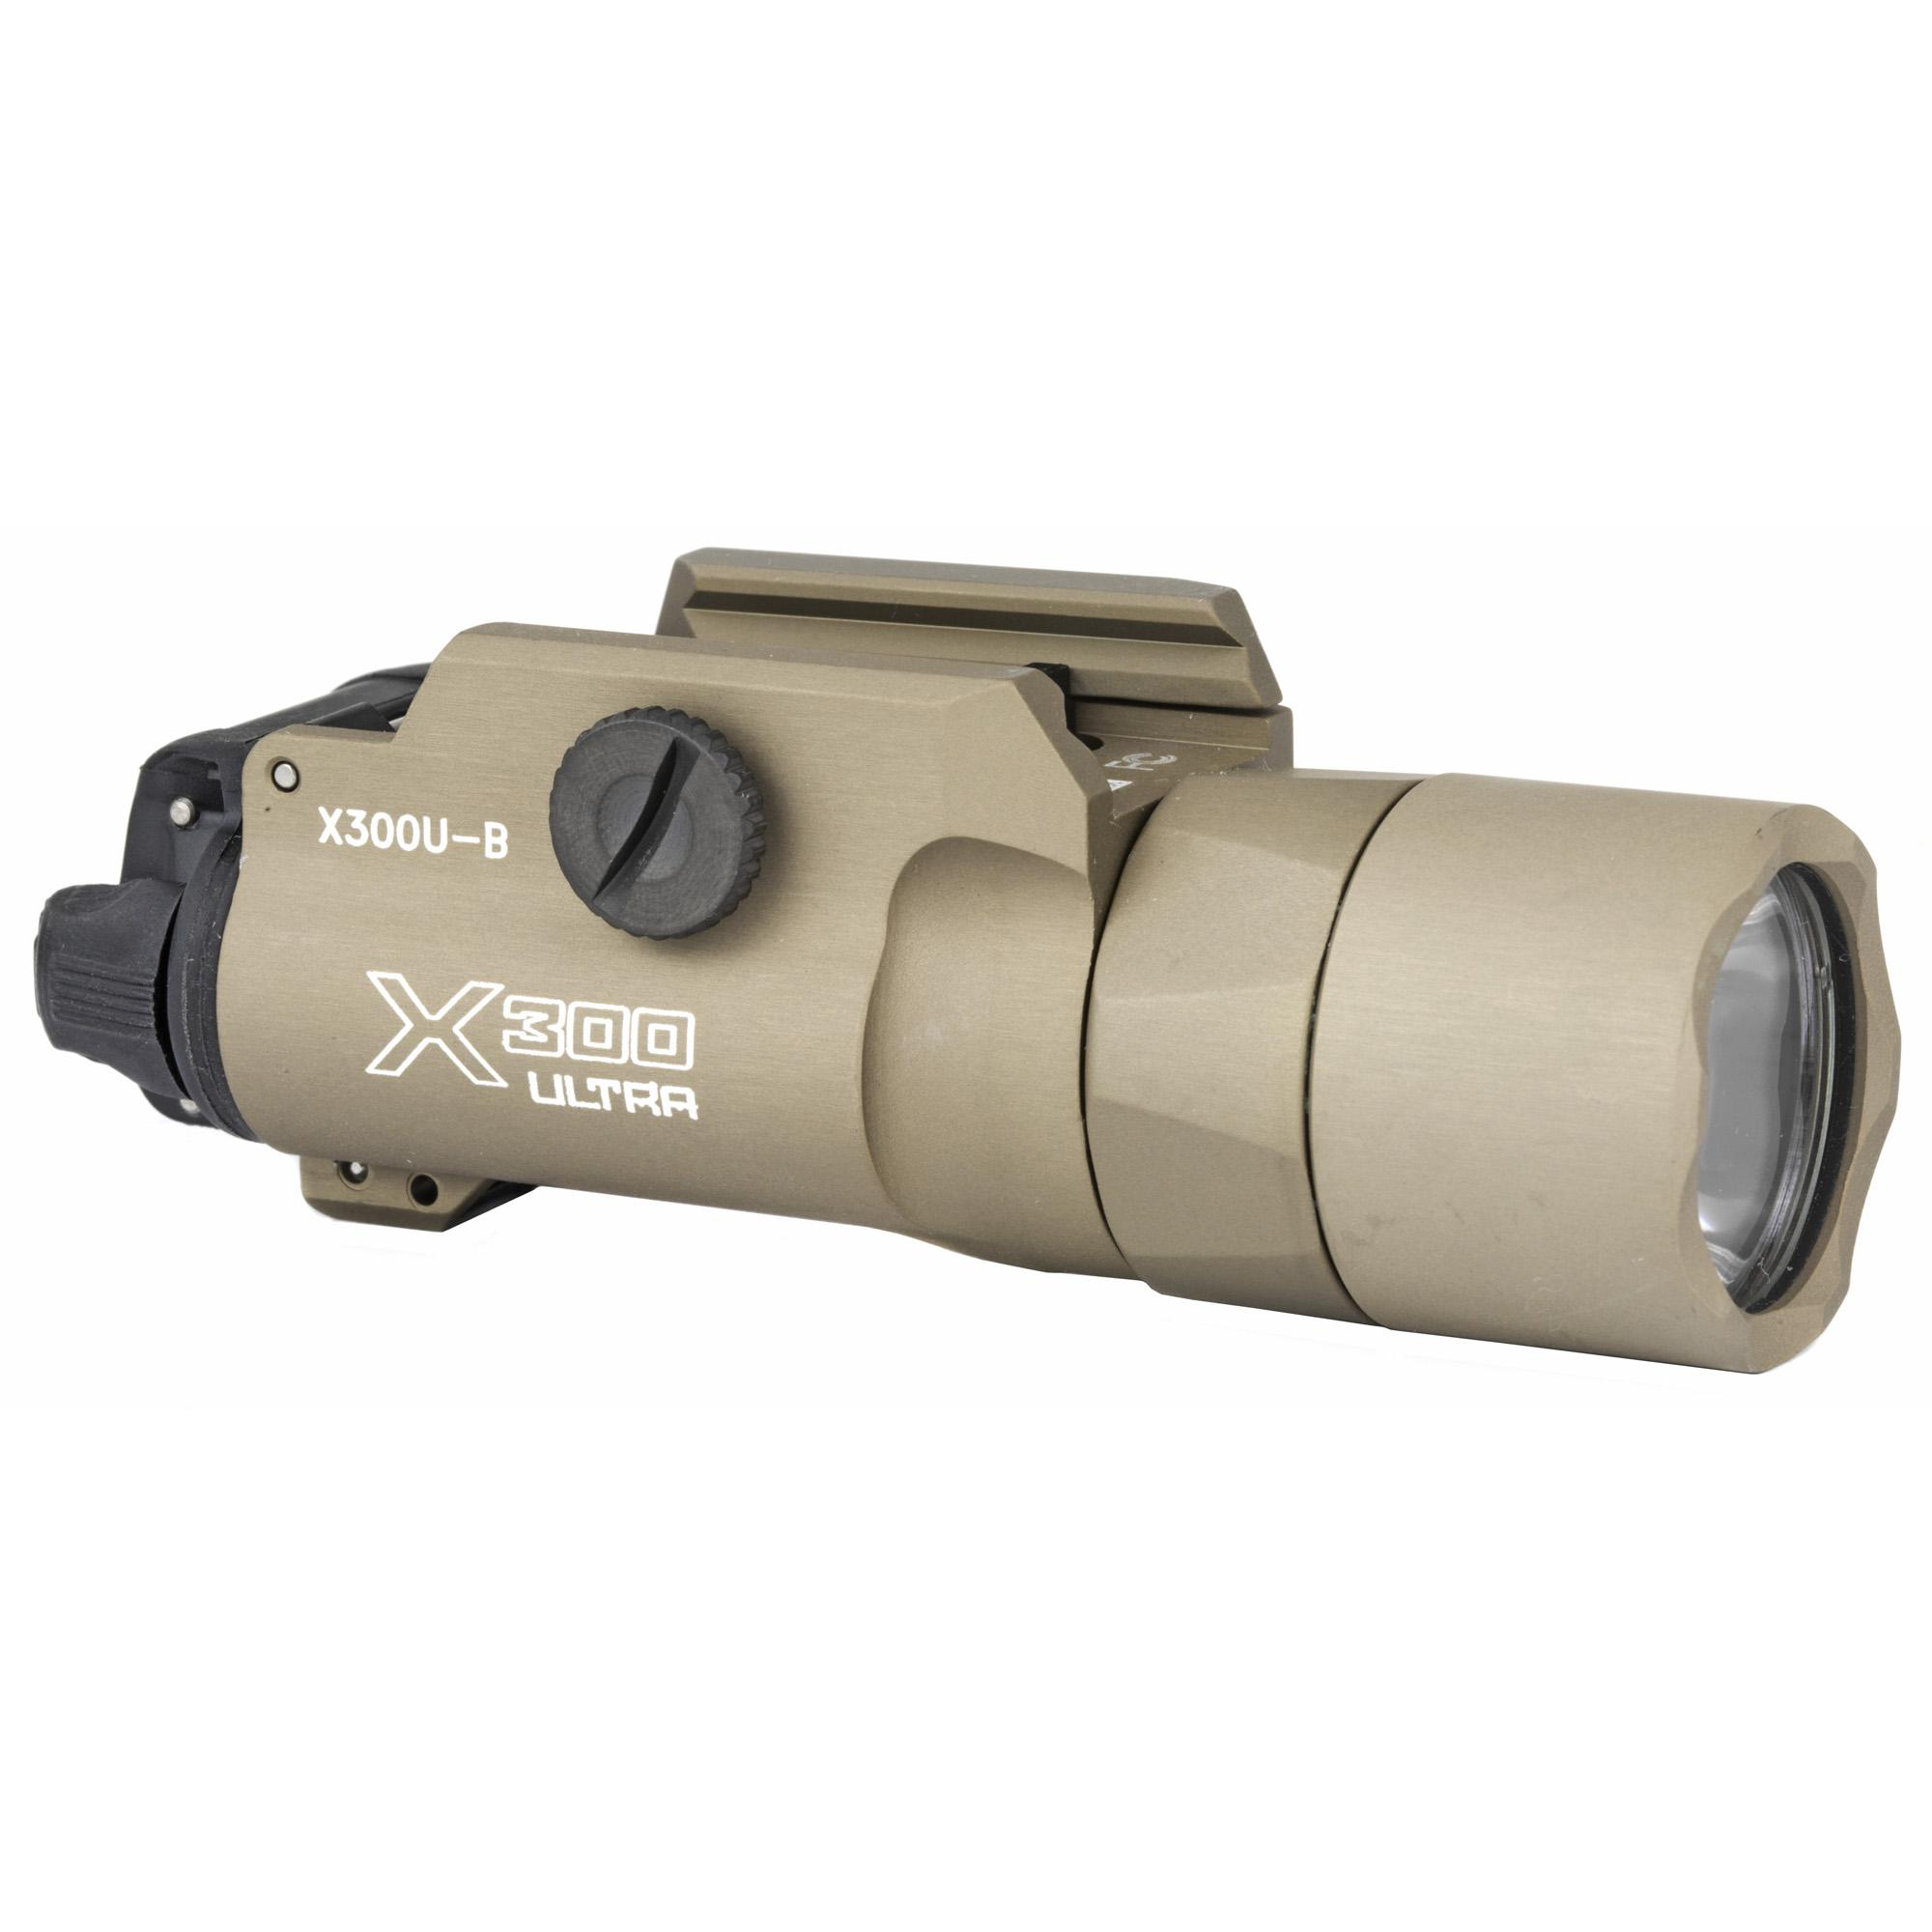 Surefire X300u-b Tan 1000 Lm-led X300U-B-TN Photo 2